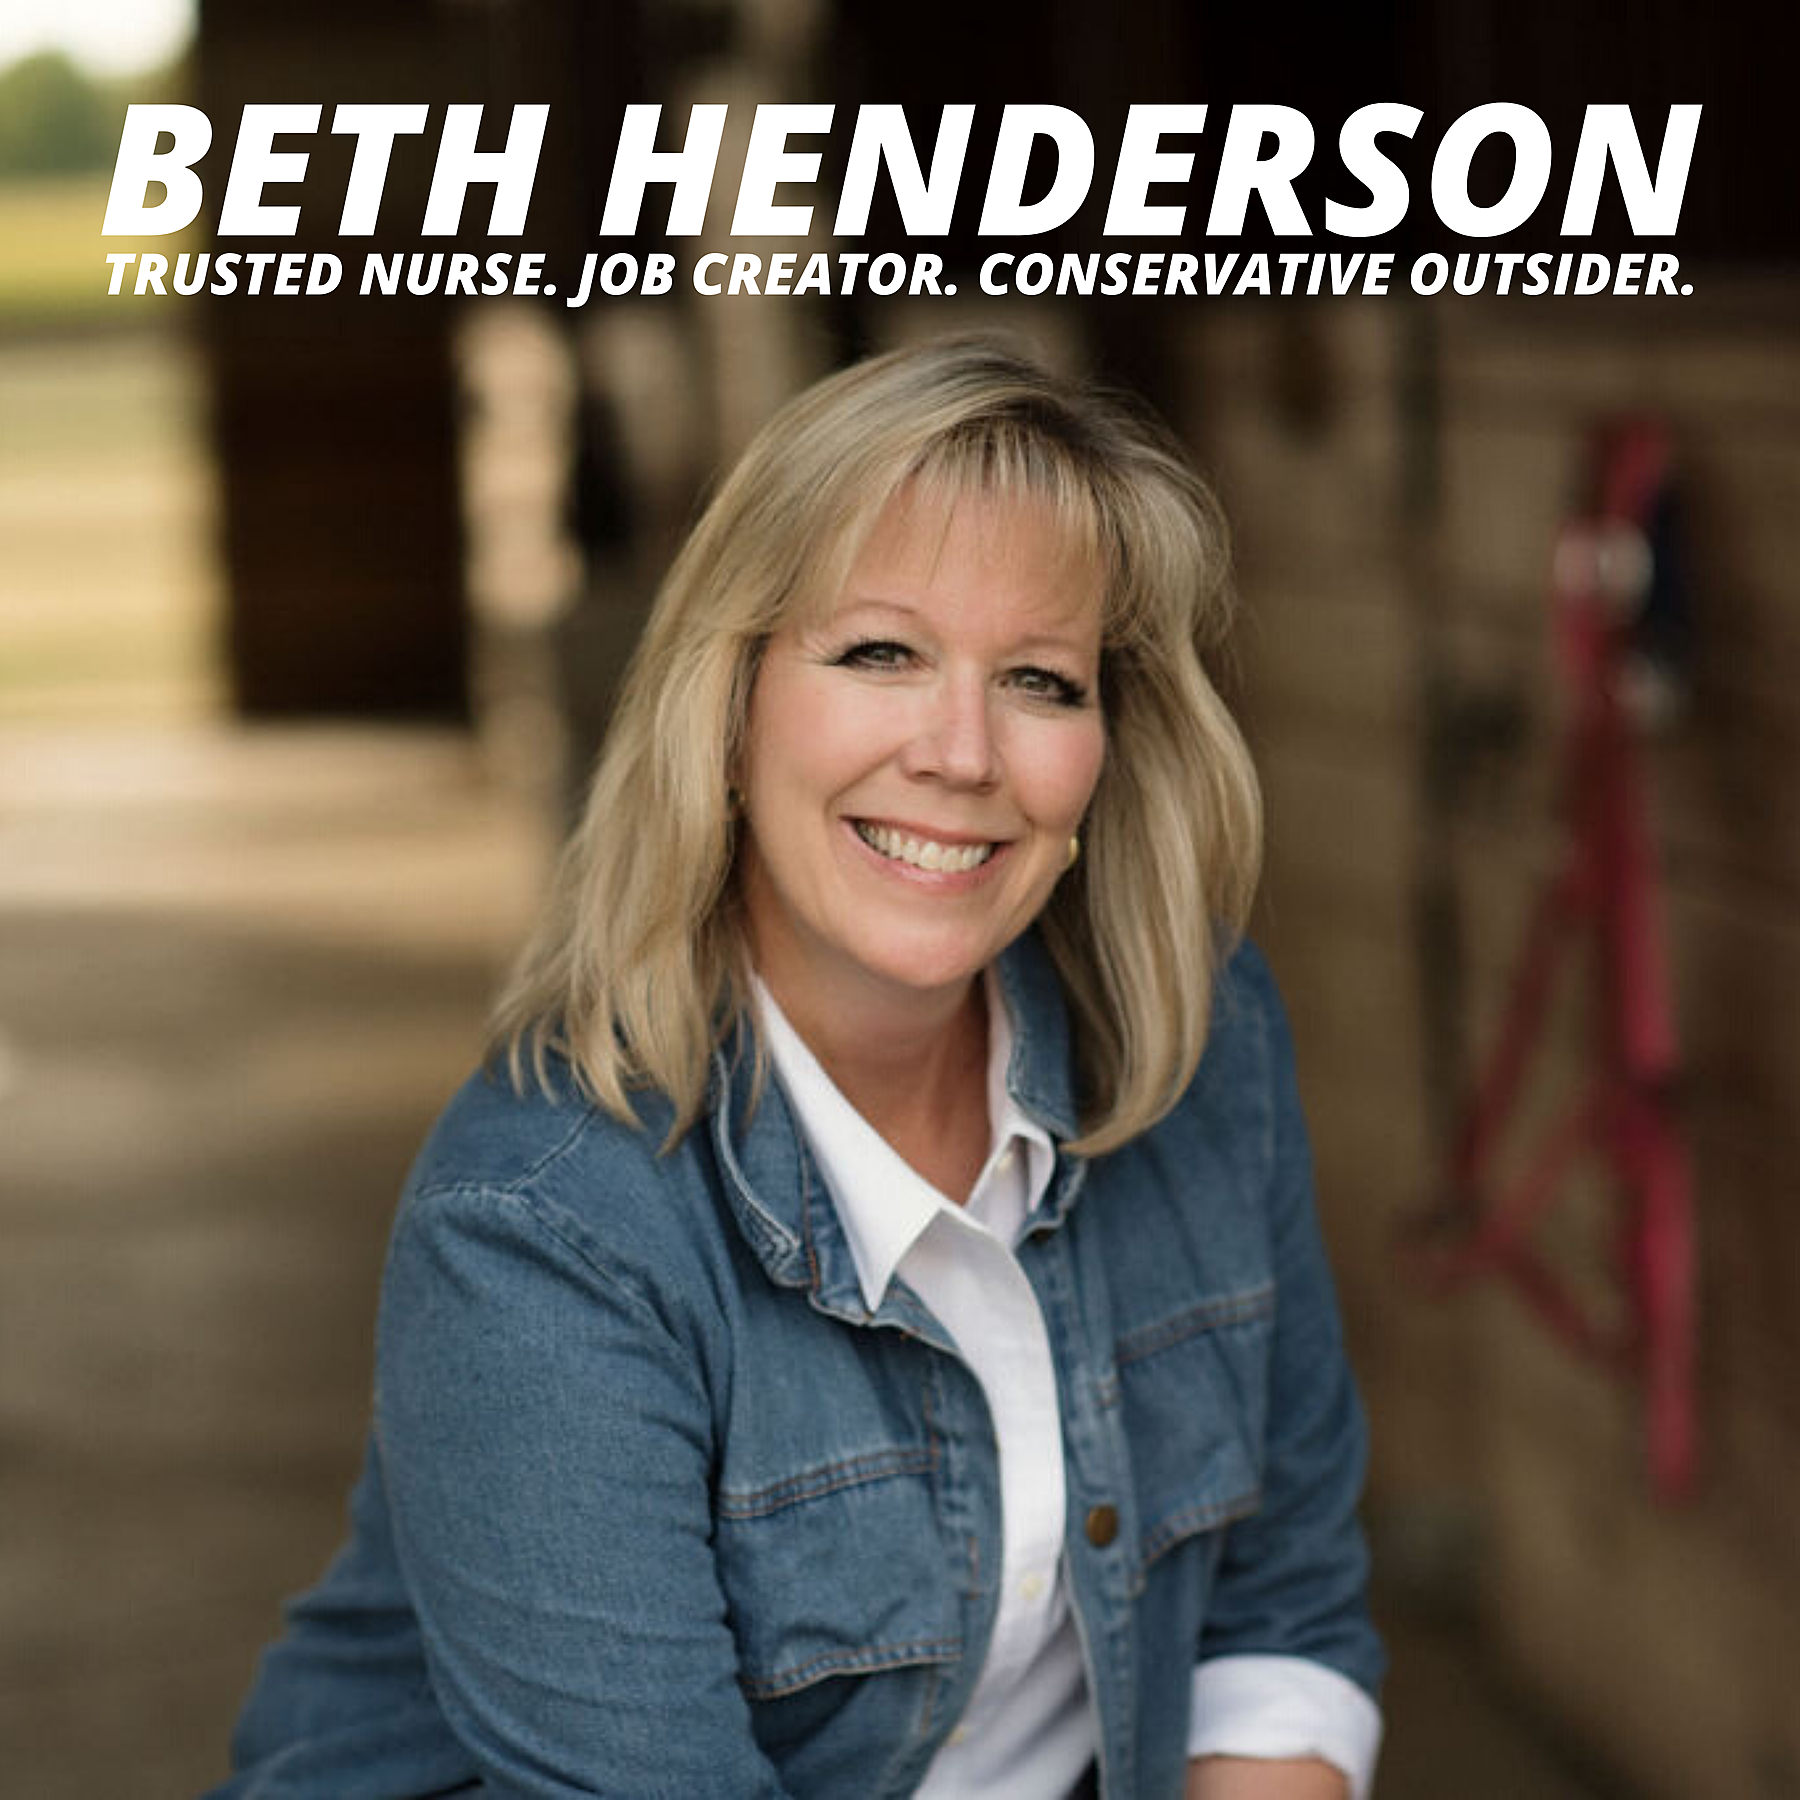 Beth Henderson for Congress: General Fund